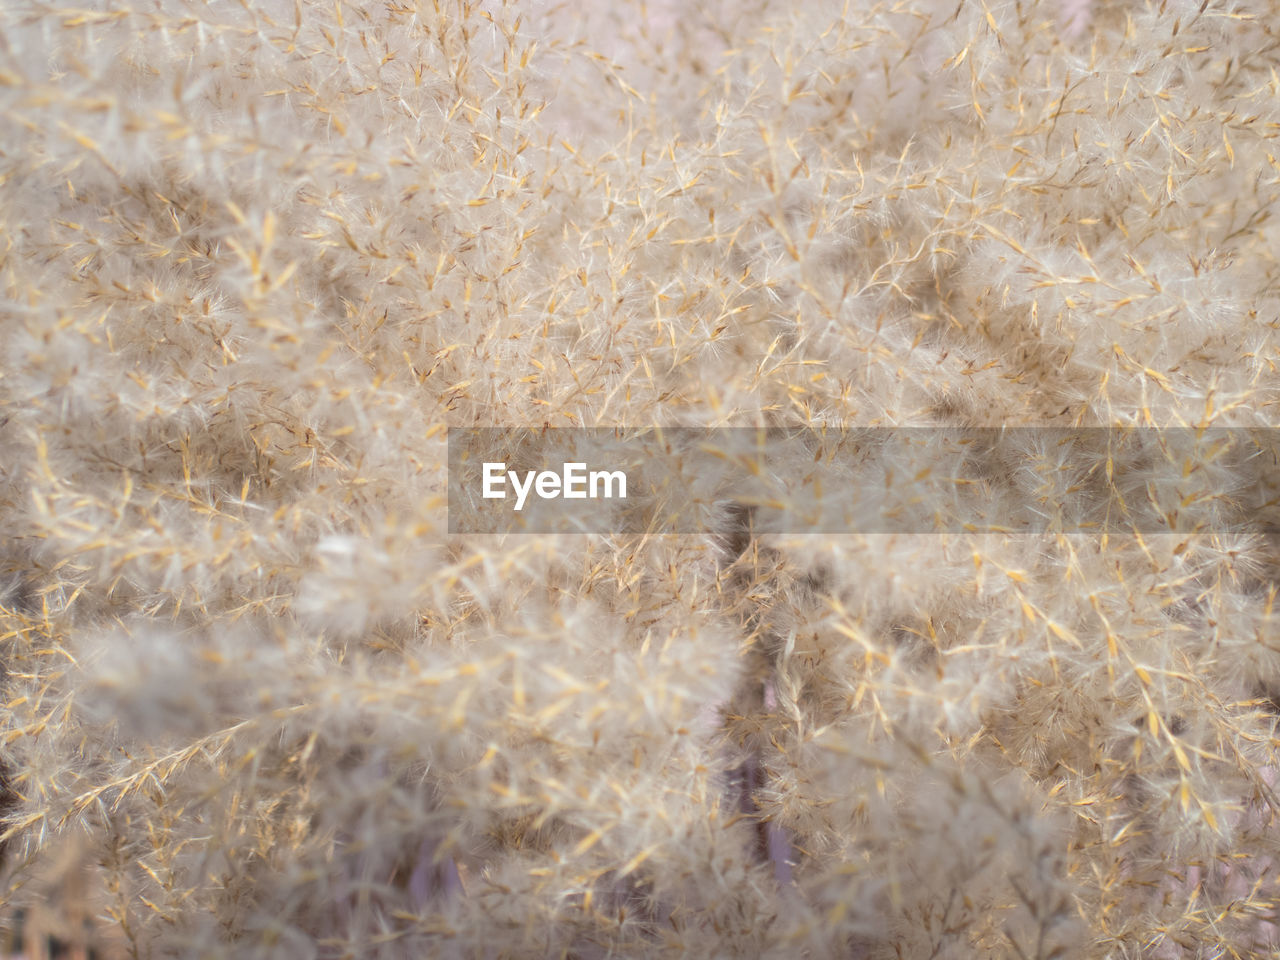 nature, agriculture, backgrounds, cereal plant, full frame, pattern, field, no people, growth, day, plant, textured, wheat, close-up, fragility, beauty in nature, gold colored, rural scene, outdoors, fiber, grass, freshness